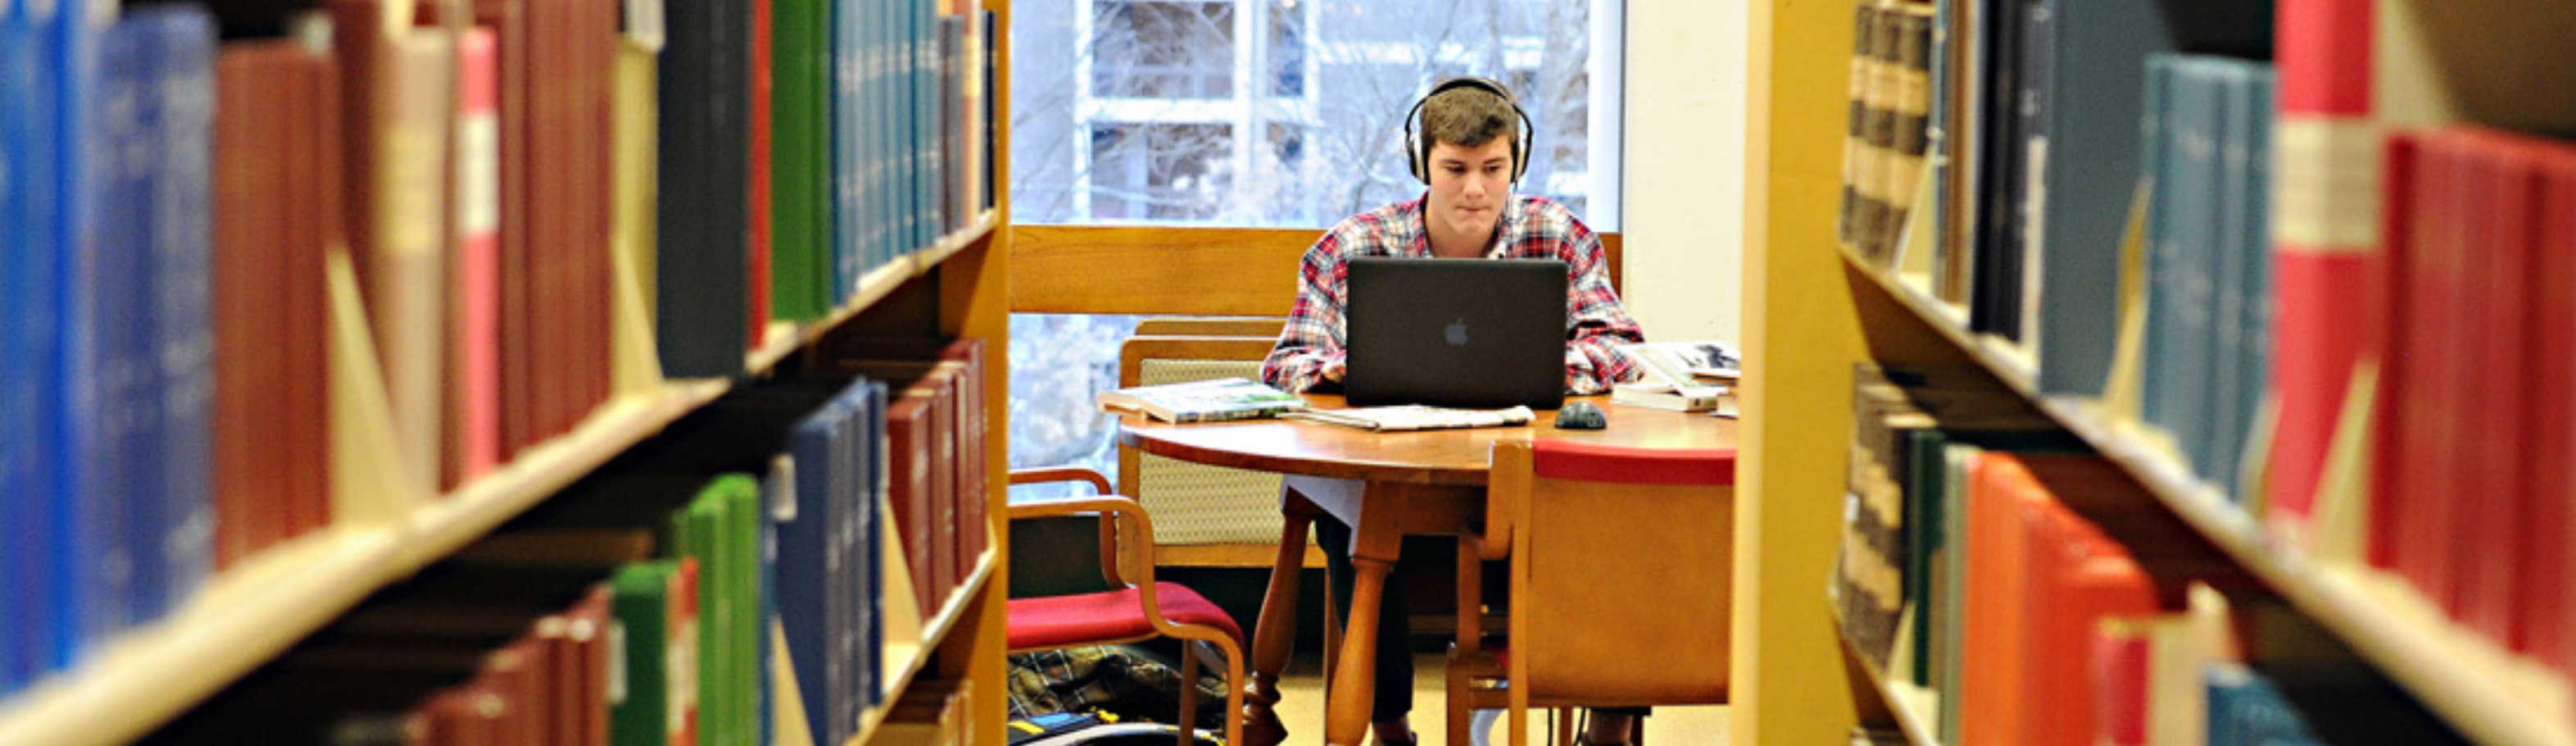 Student studying in the stacks